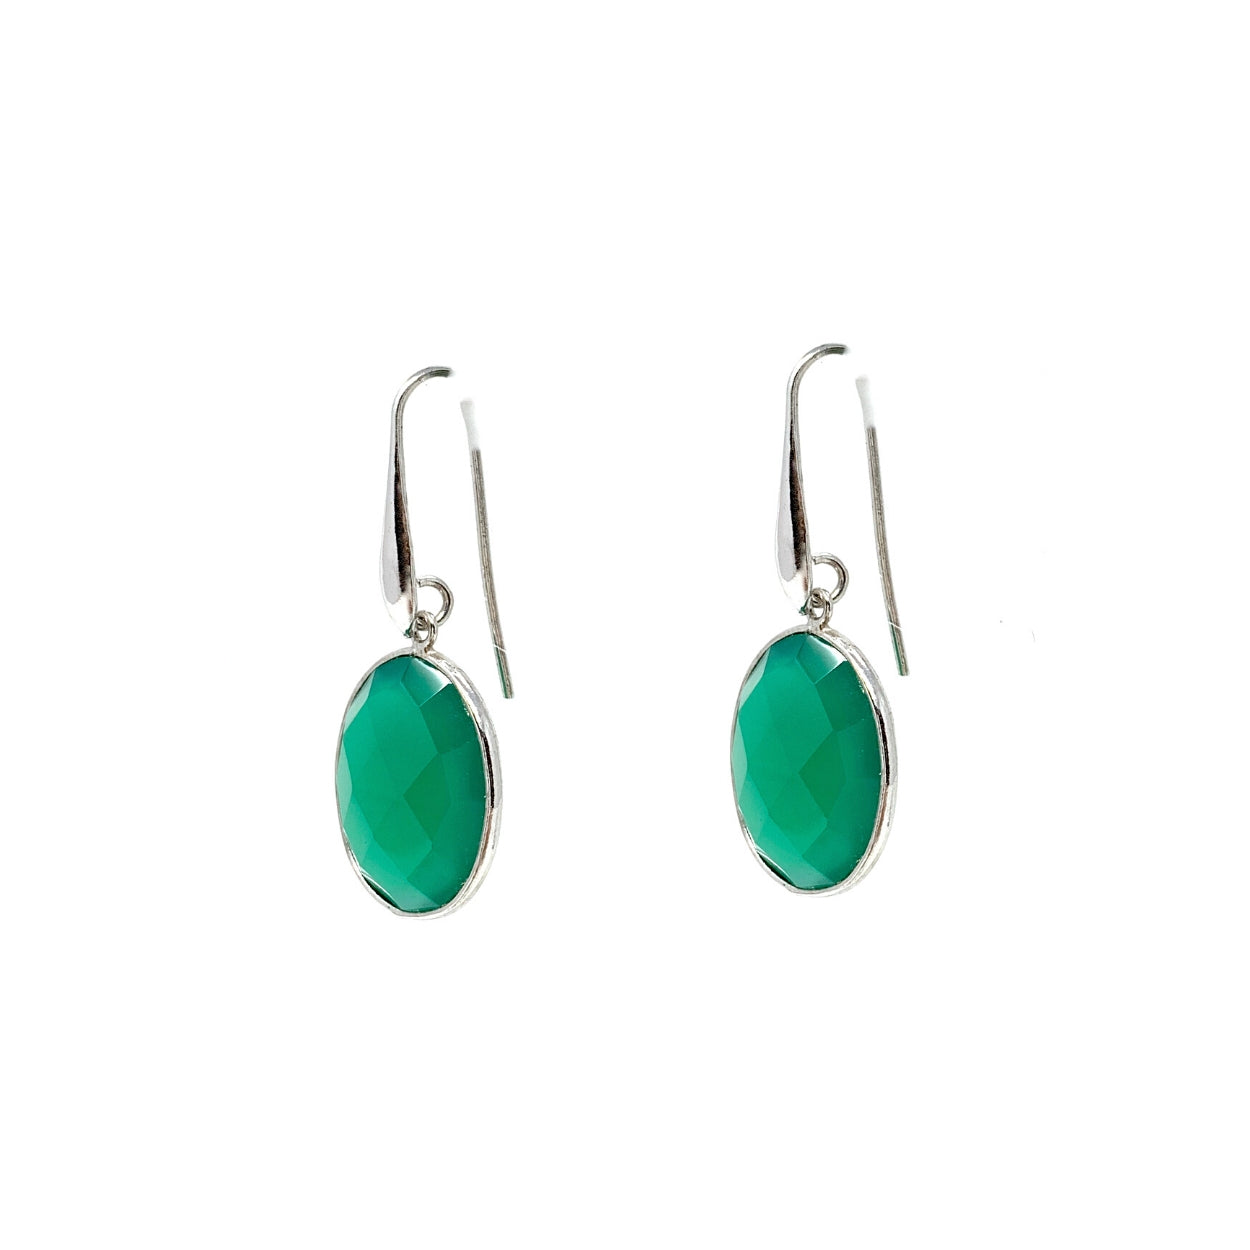 Dolce Vita Earrings in Silver with Oval Green Agate